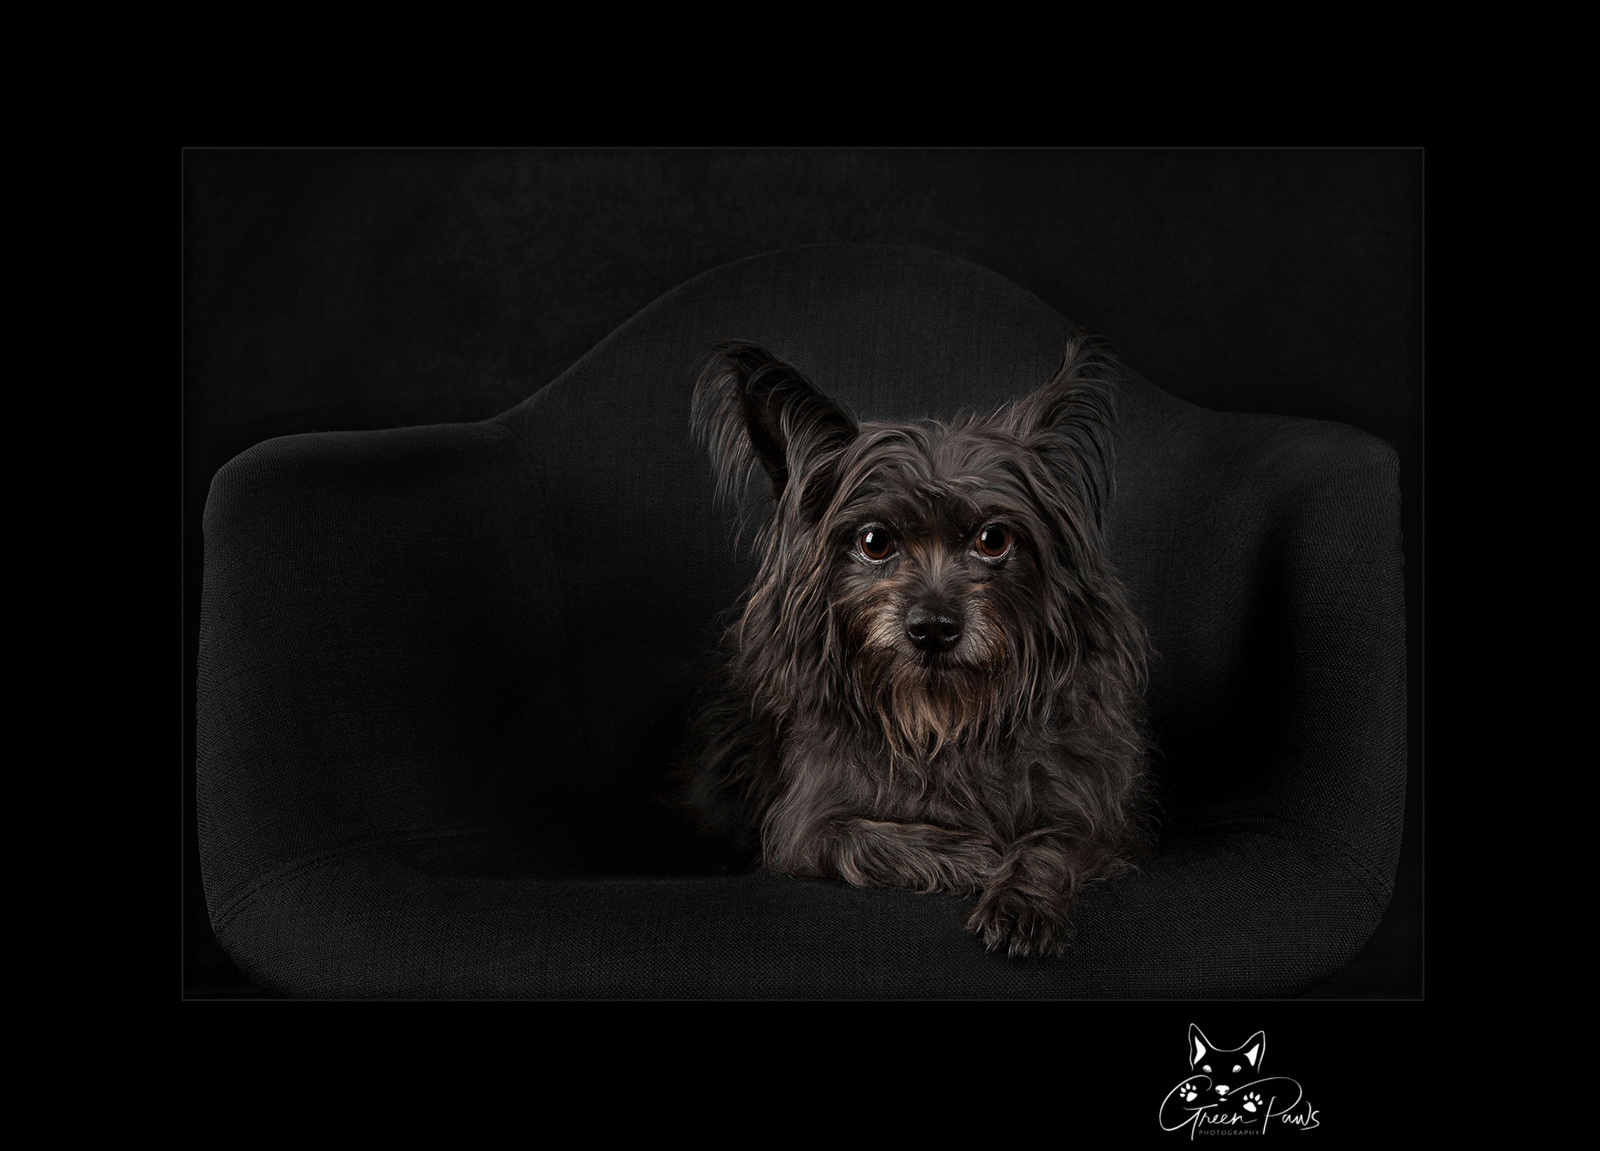 ©2021 Green Paws Photography. All Rights Reserved.